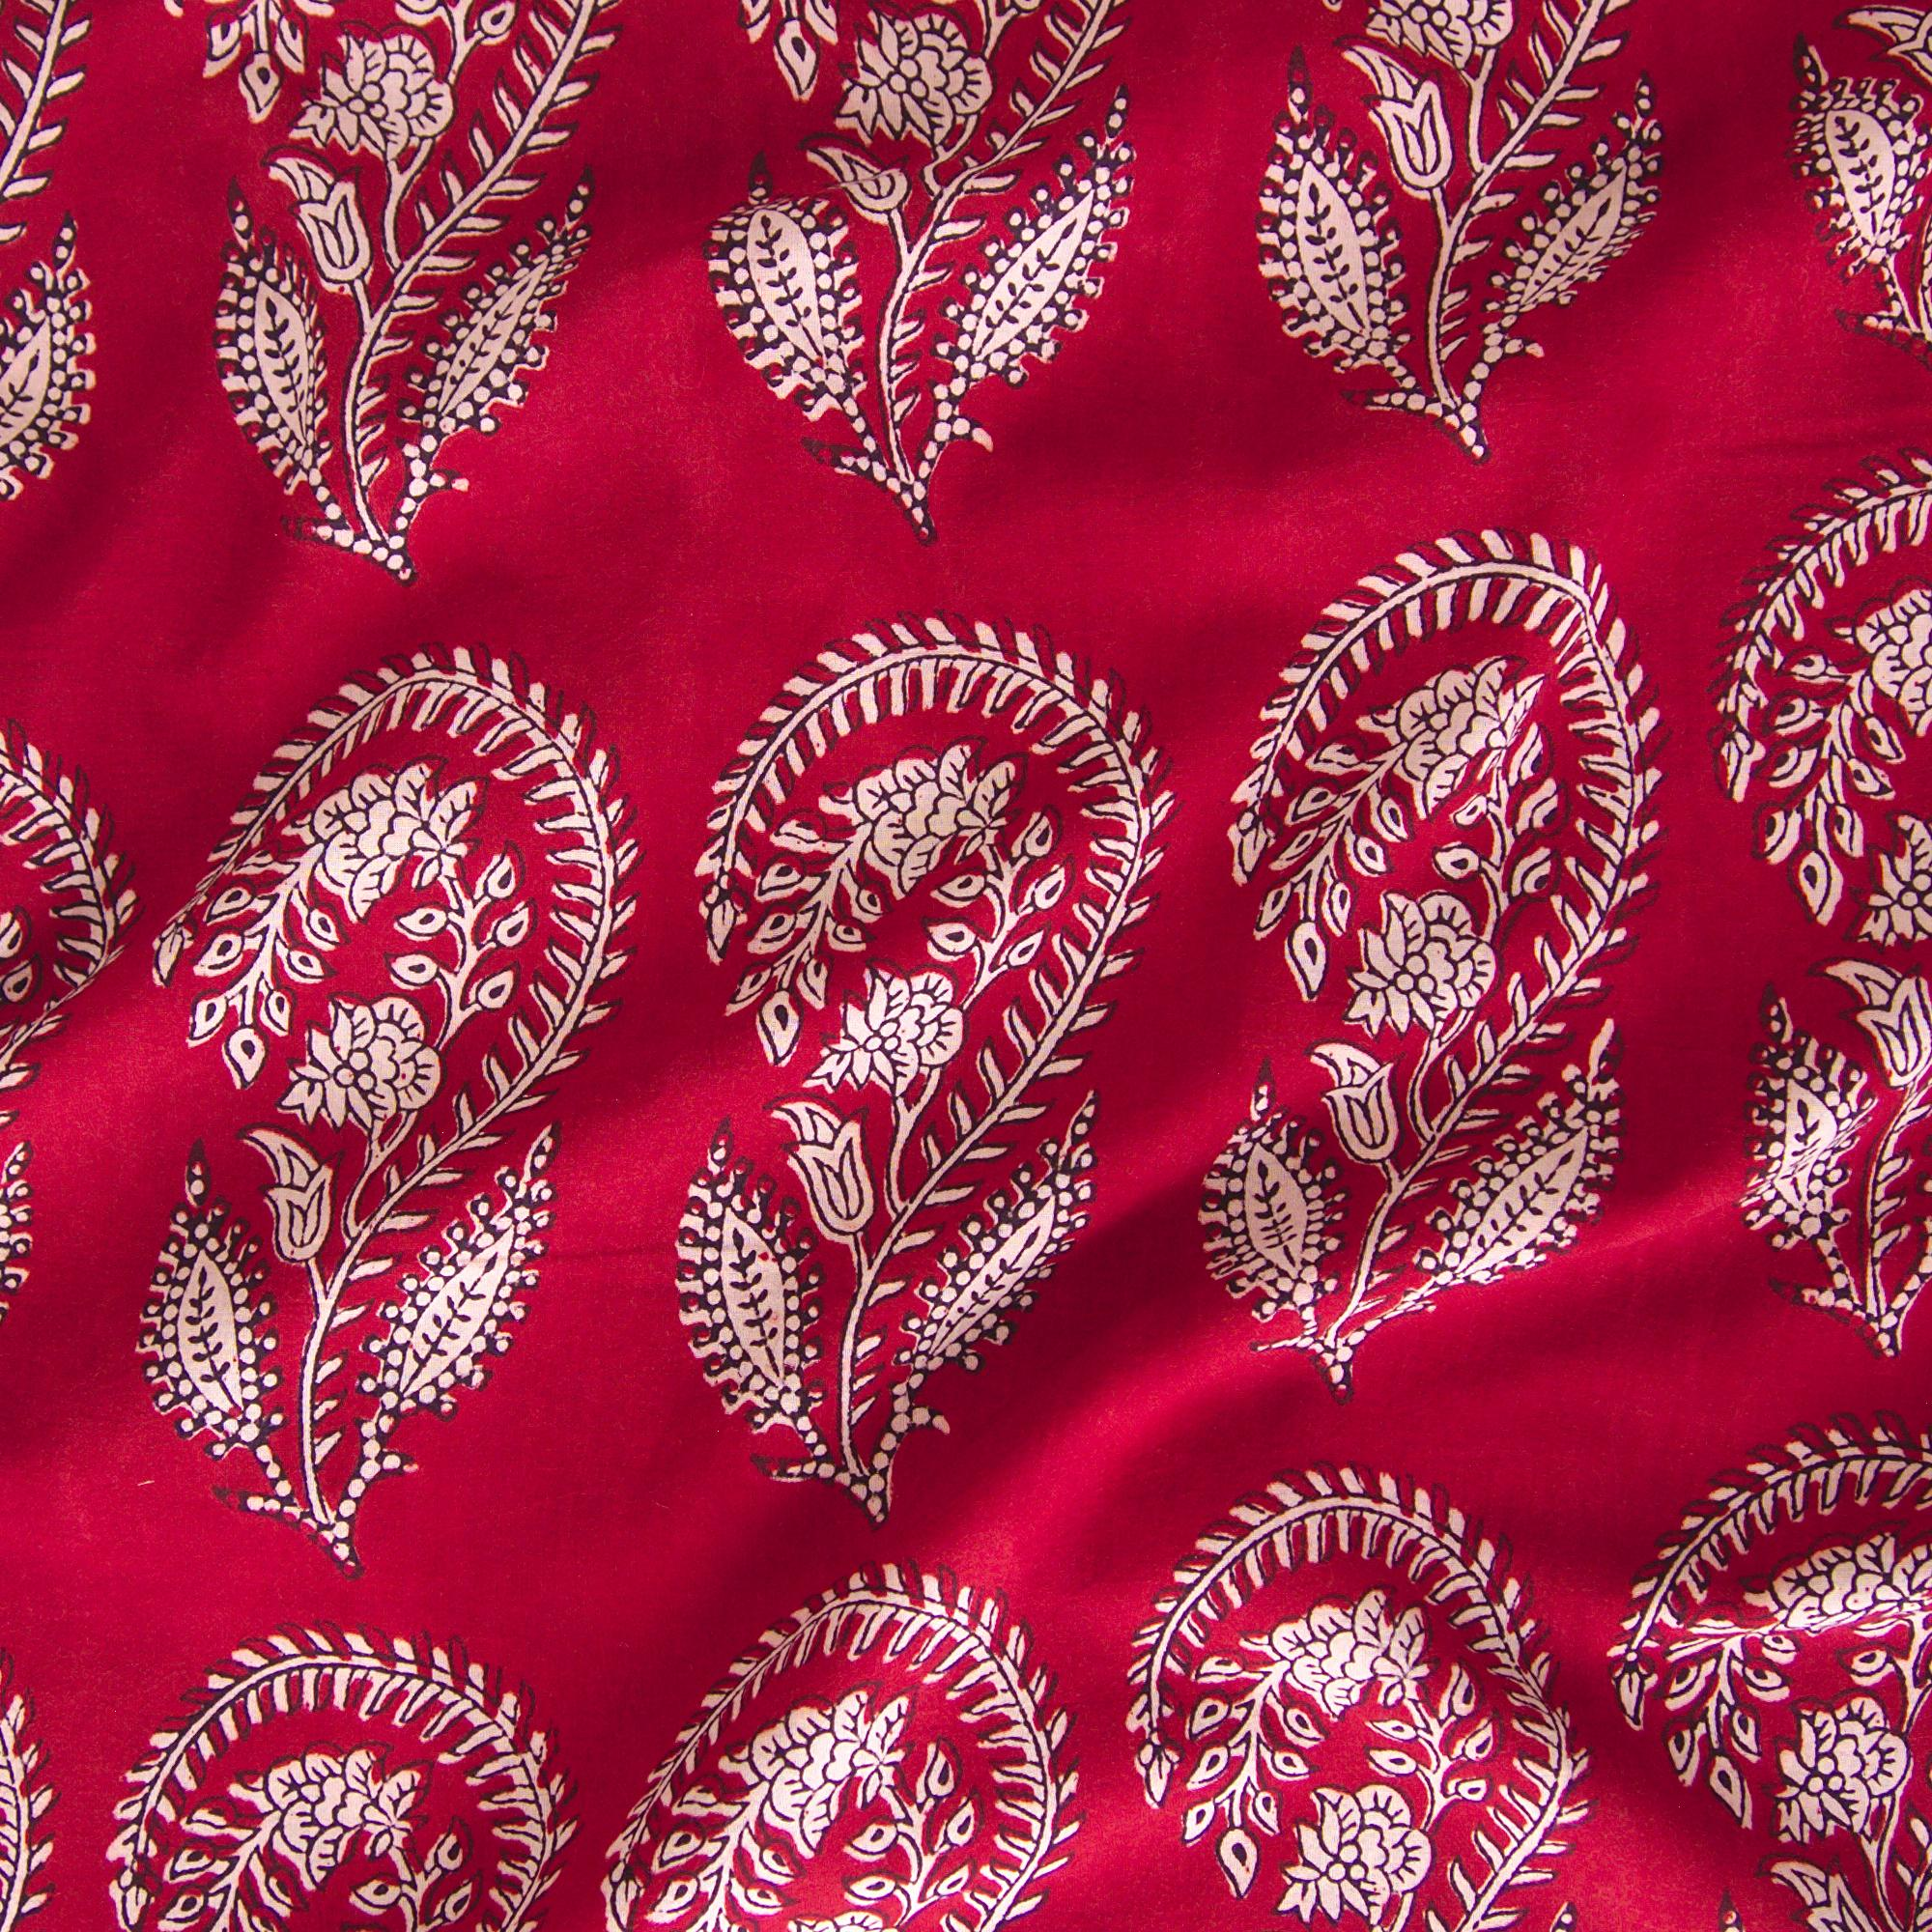 100% Block - Printed Cotton Fabric From India - Scorpion Design - Iron Rust Black & Alizarin Red Dyes - Contrast - Live